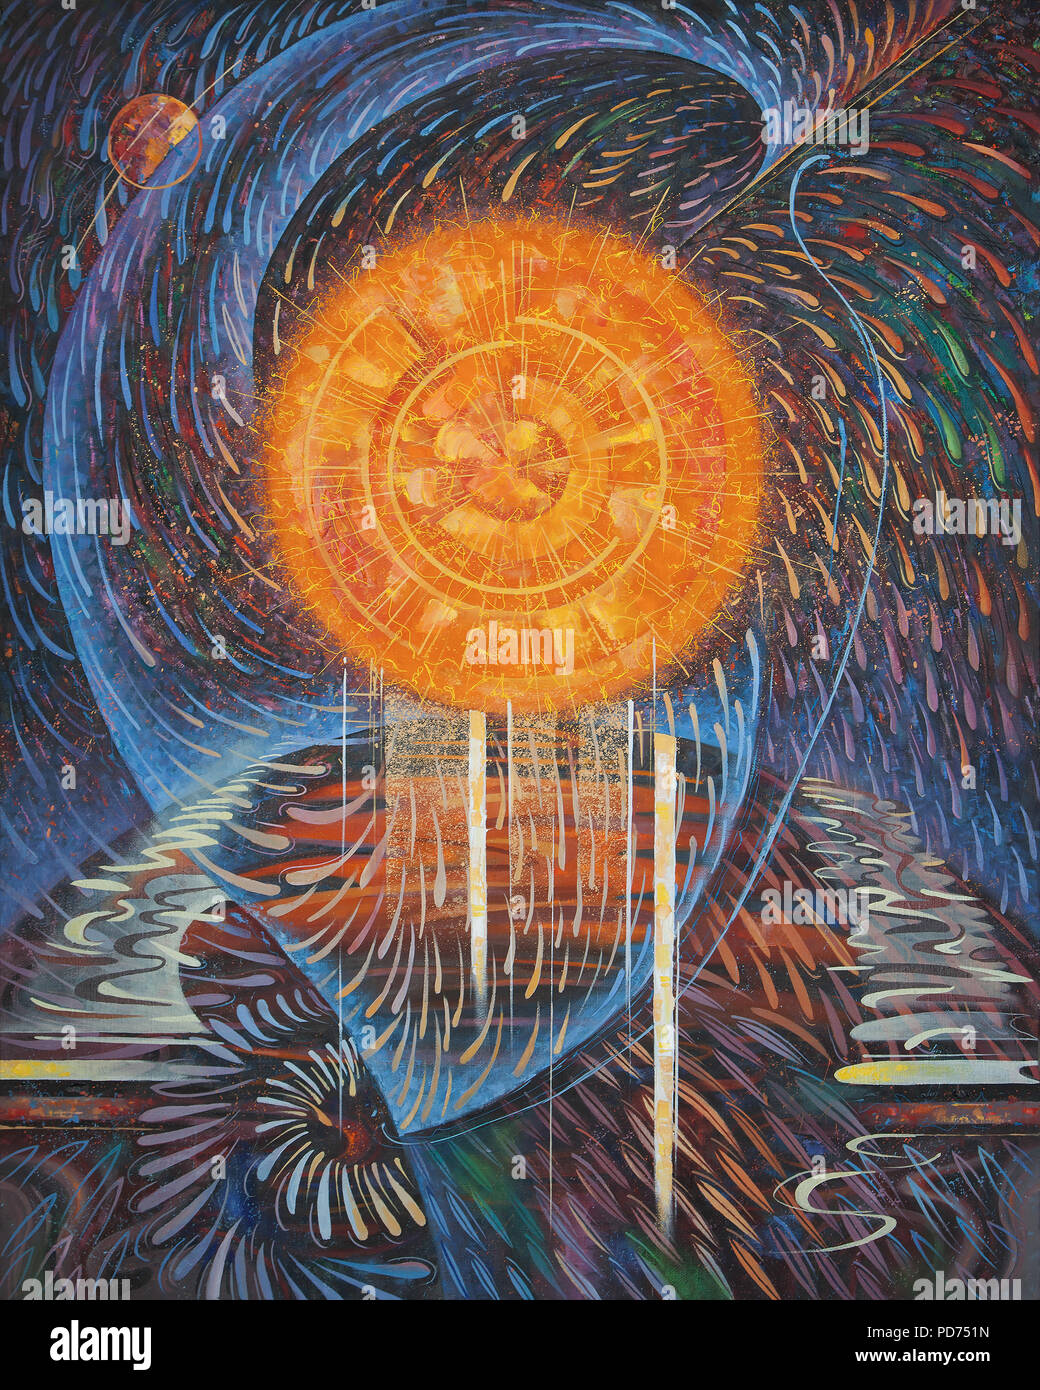 Abstract painting on the theme: Energy of the Sun. Painting: canvas, oil. Author: Nikolay Sivenkov. - Stock Image